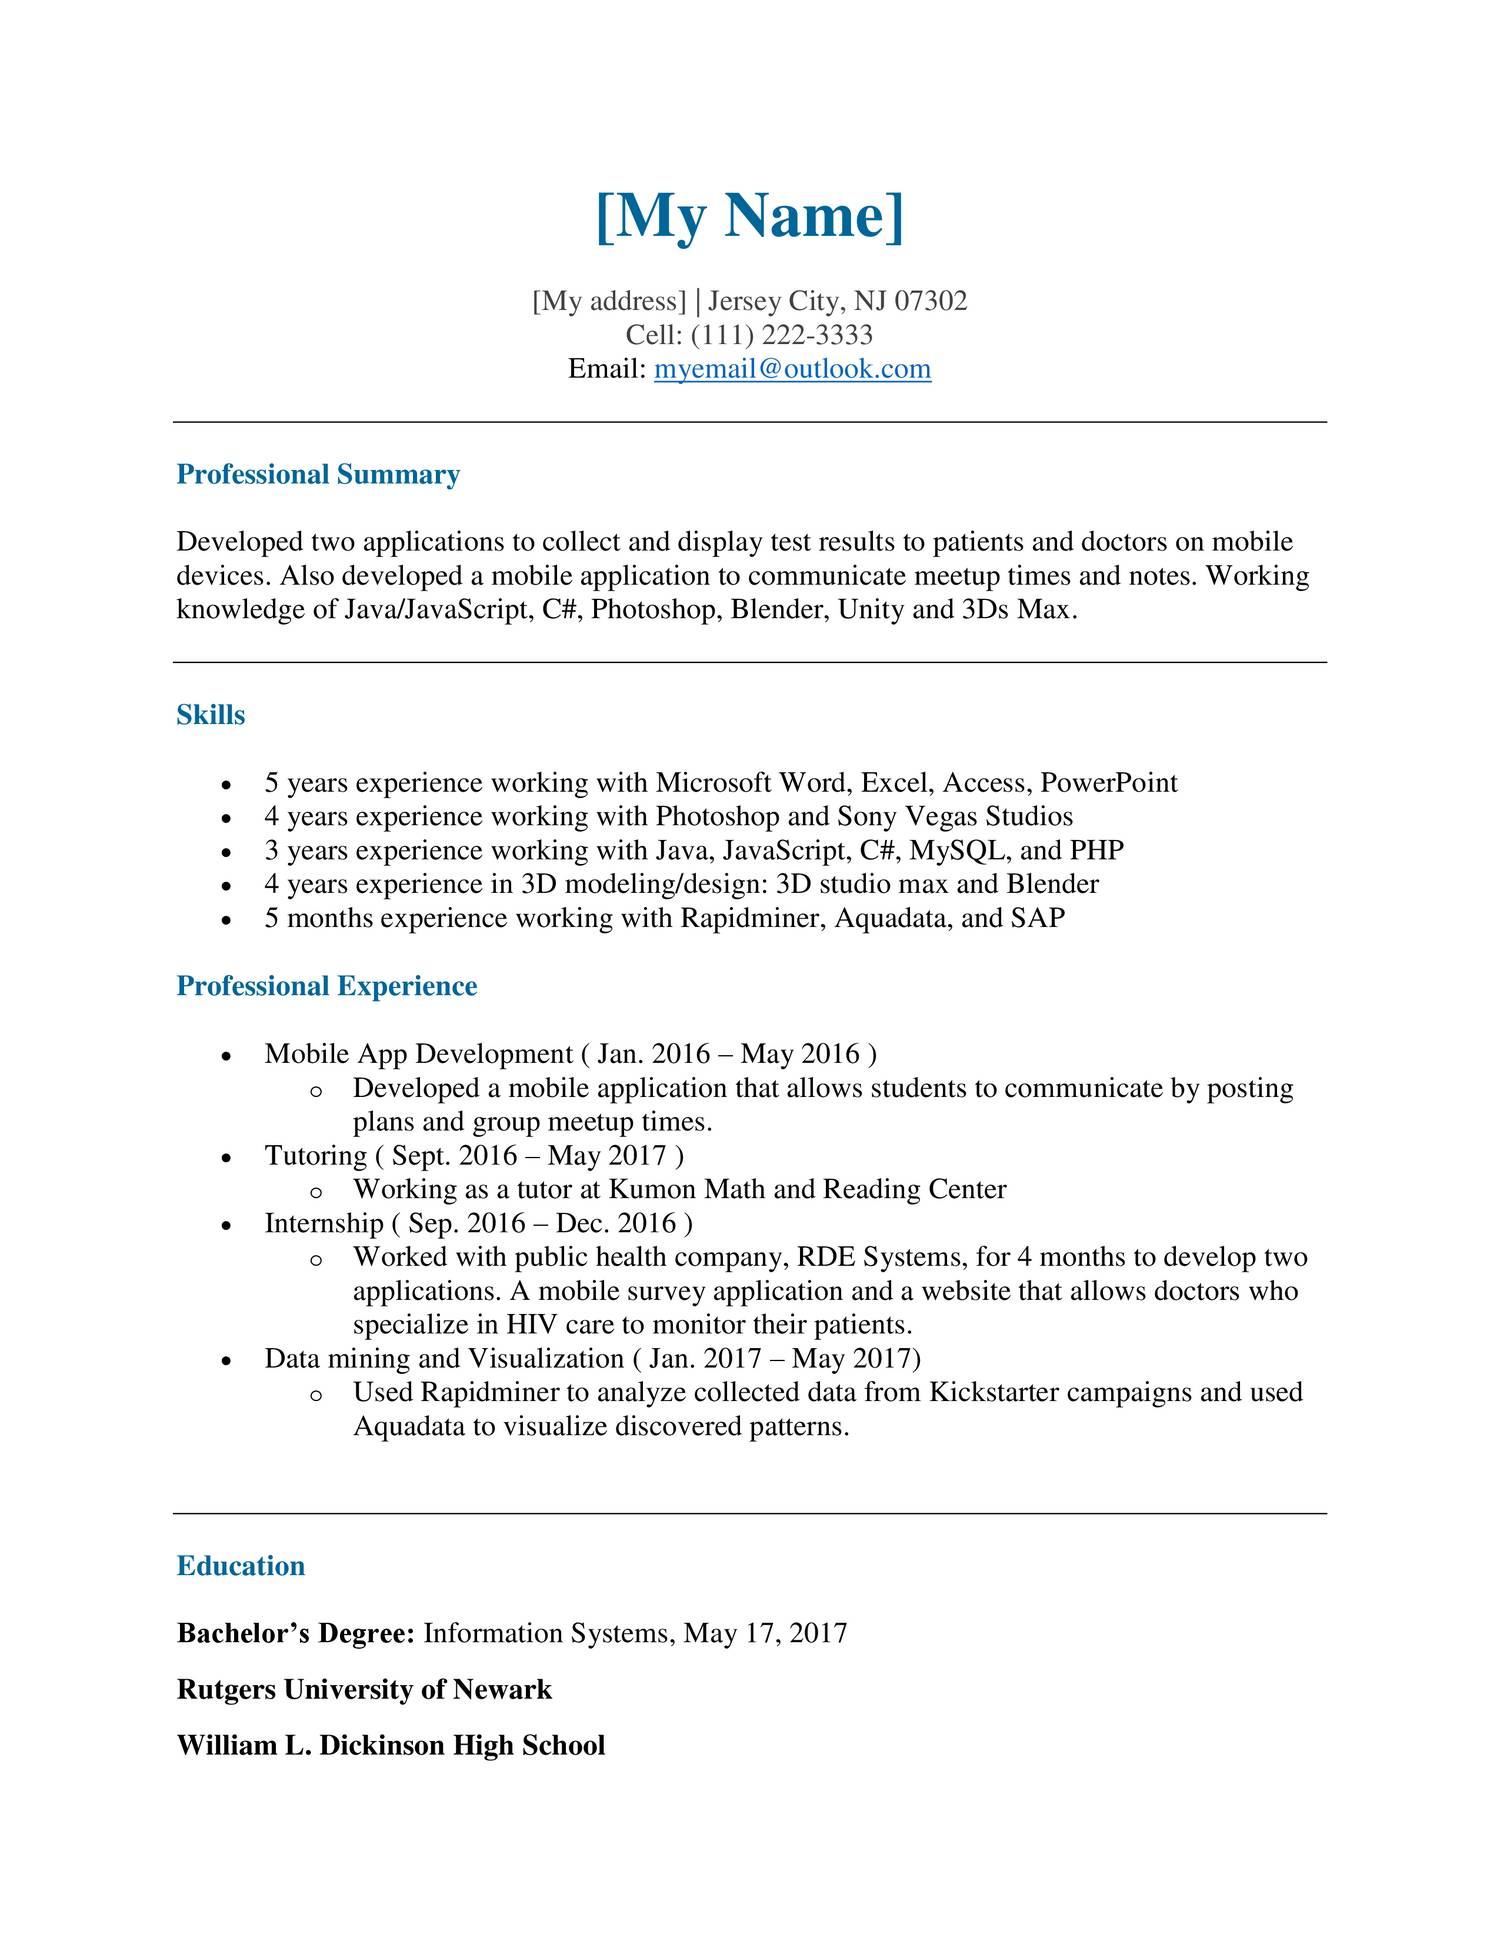 Resume for reddit pdf | DocDroid